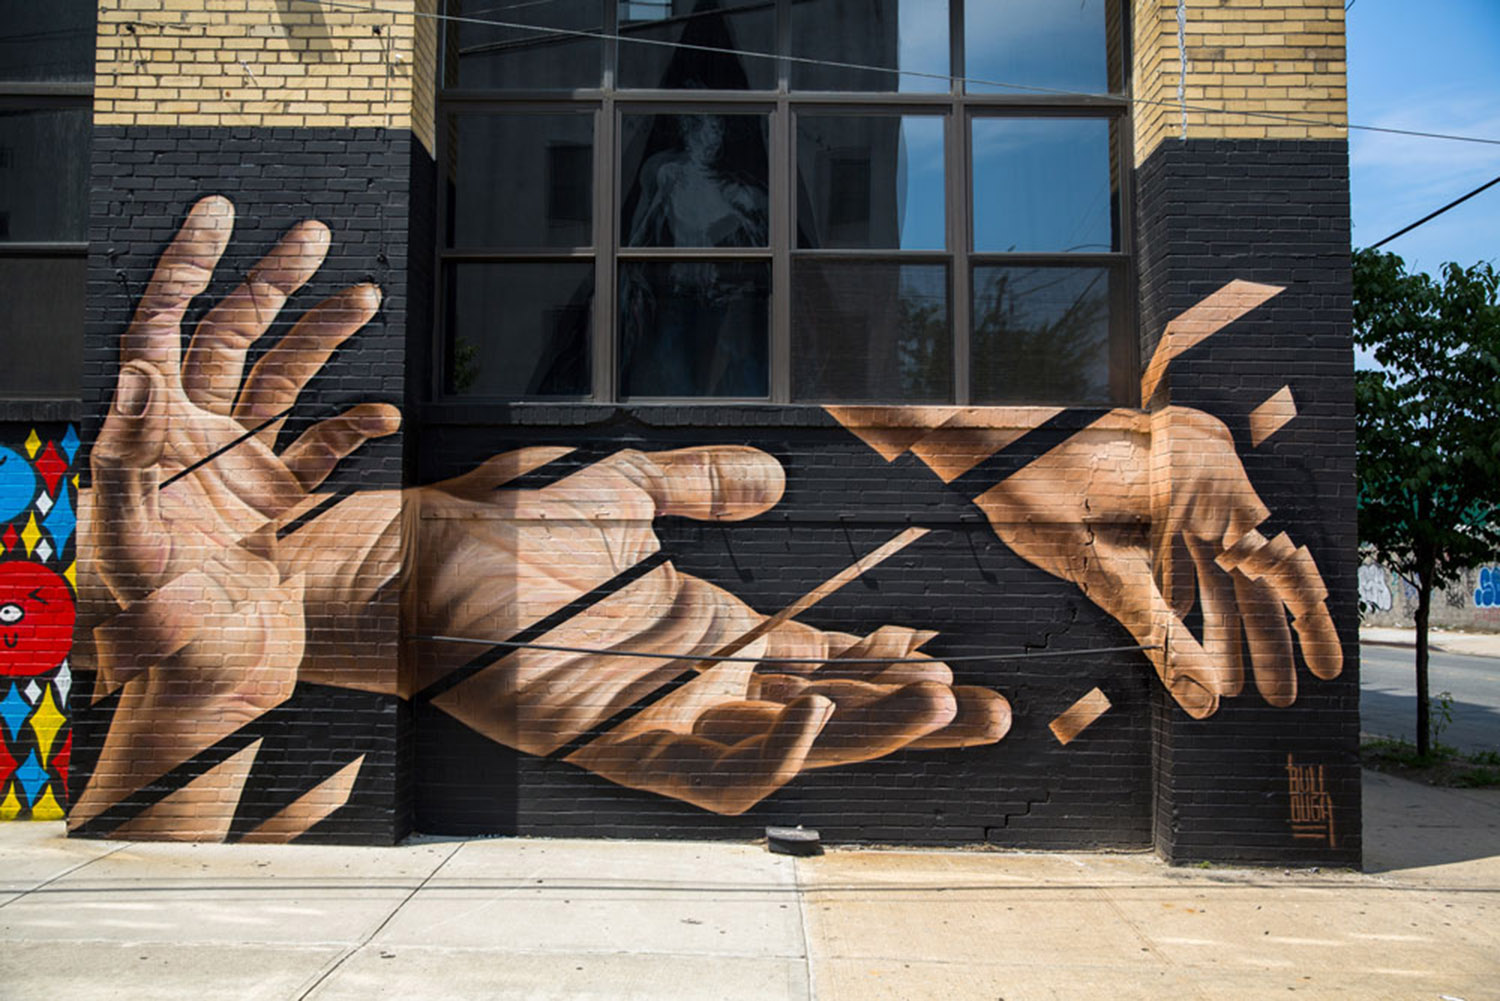 segmented hands mural by james bullough